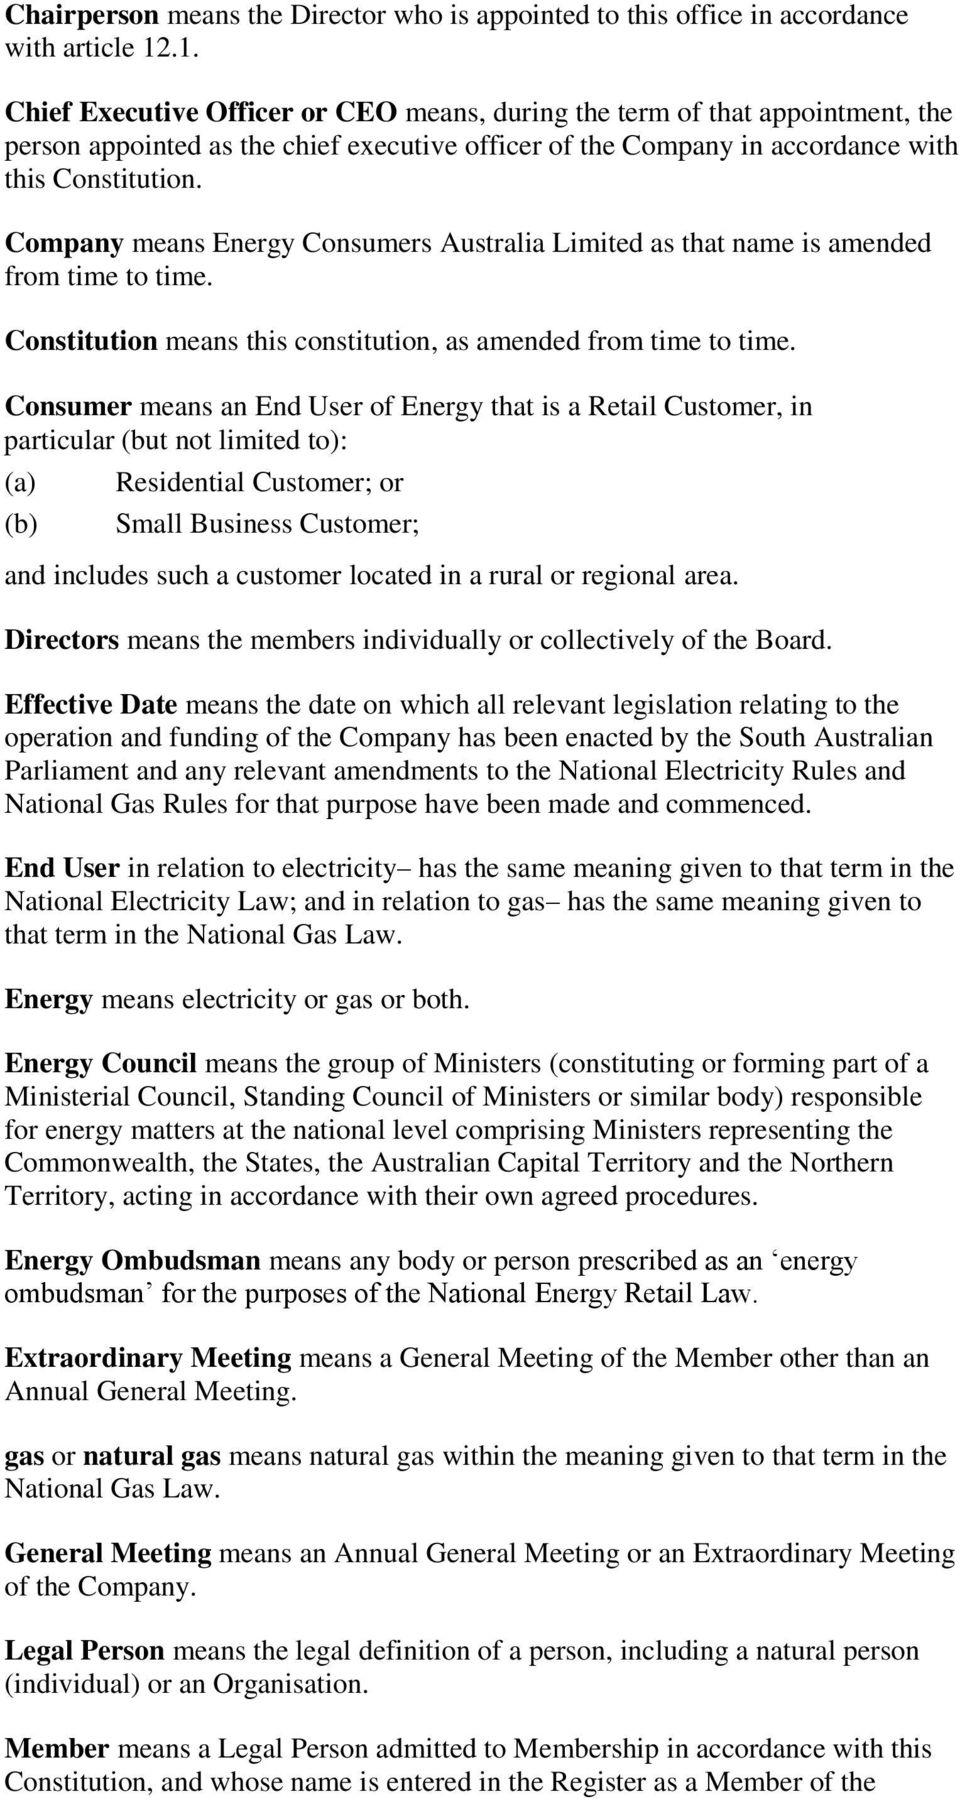 Company means Energy Consumers Australia Limited as that name is amended from time to time. Constitution means this constitution, as amended from time to time.